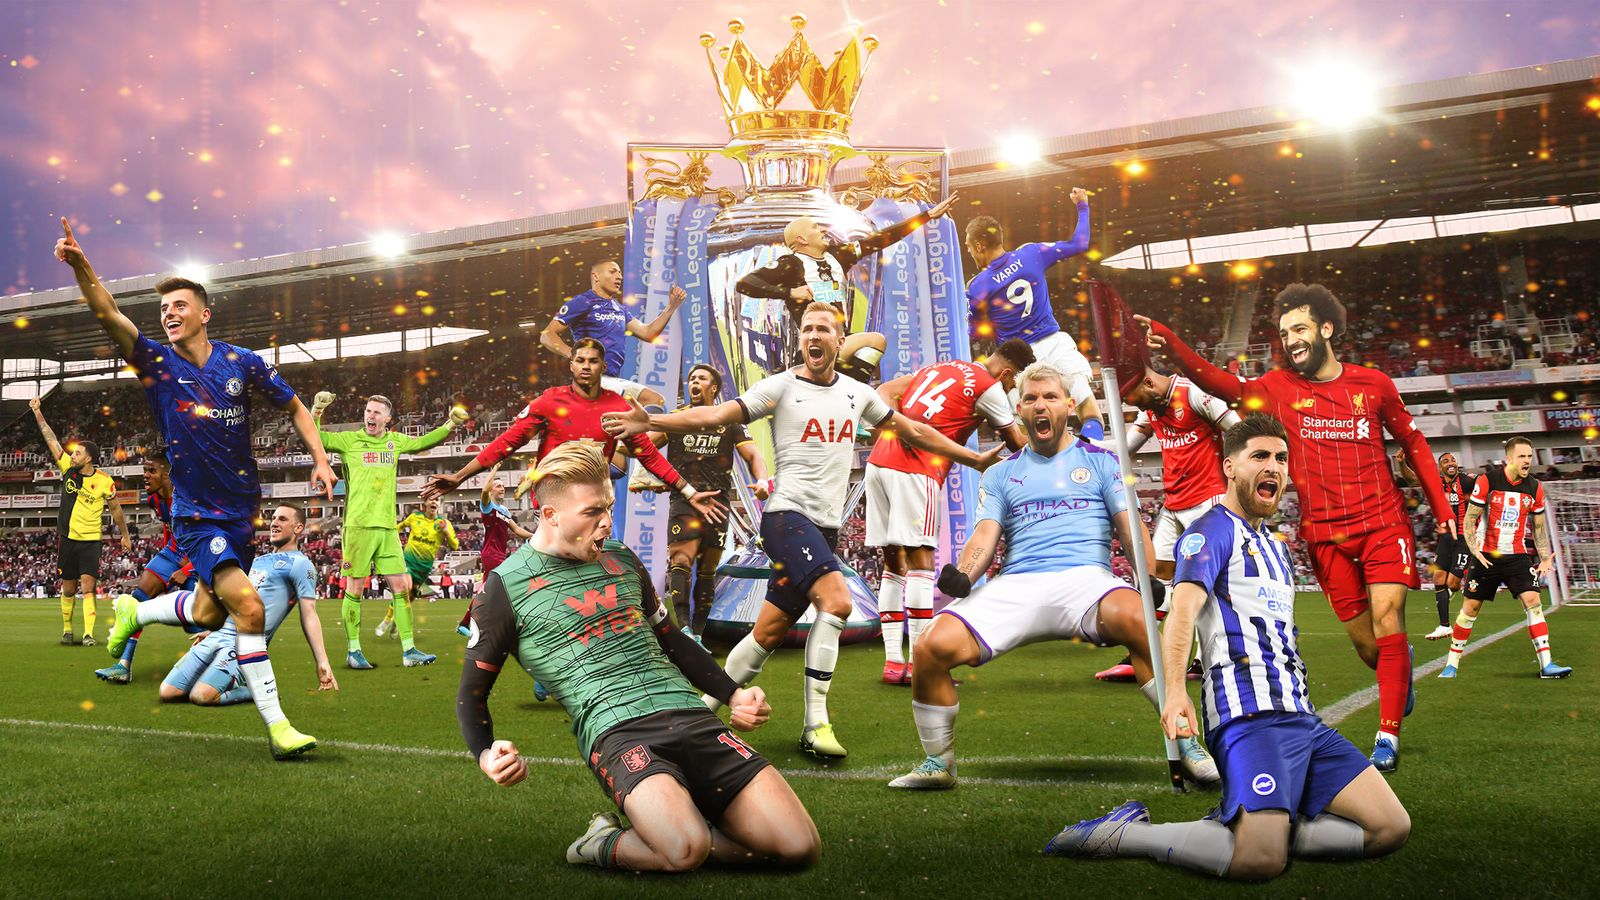 The 2020-21 English Premier League season will begin on Sept. 12 and the final round of matches will be held on May 23, the league announced on Friday. The new season, originally scheduled to begin on Aug. 8, has been delayed this year after the Premier League suspended the 2019-20 season for three months due […]